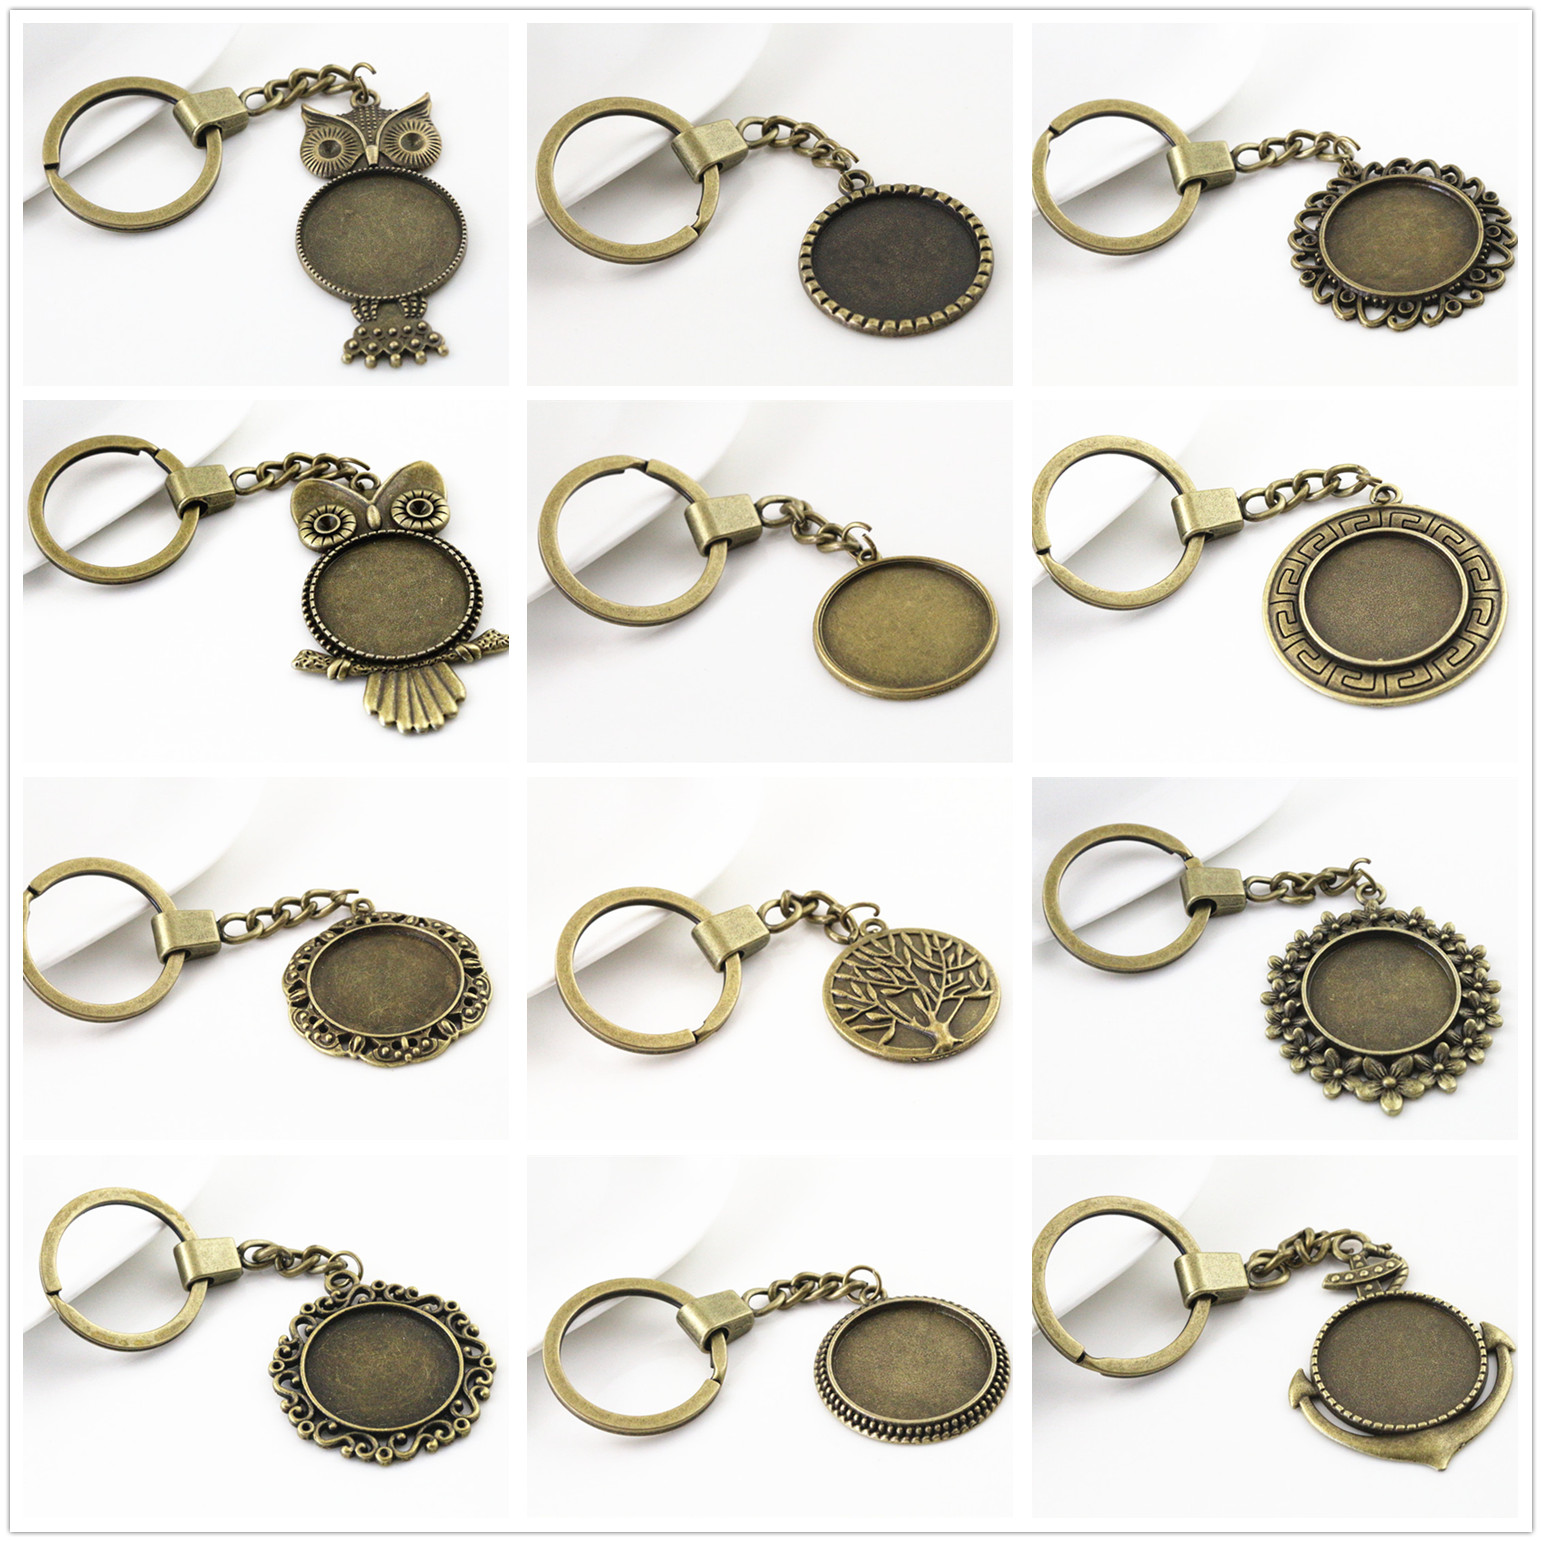 2pcs 25mm Inner Size 12 Style Antique Bronze Cameo Setting Base;Handmade Cameo Setting, Metal Key Chains Accessor